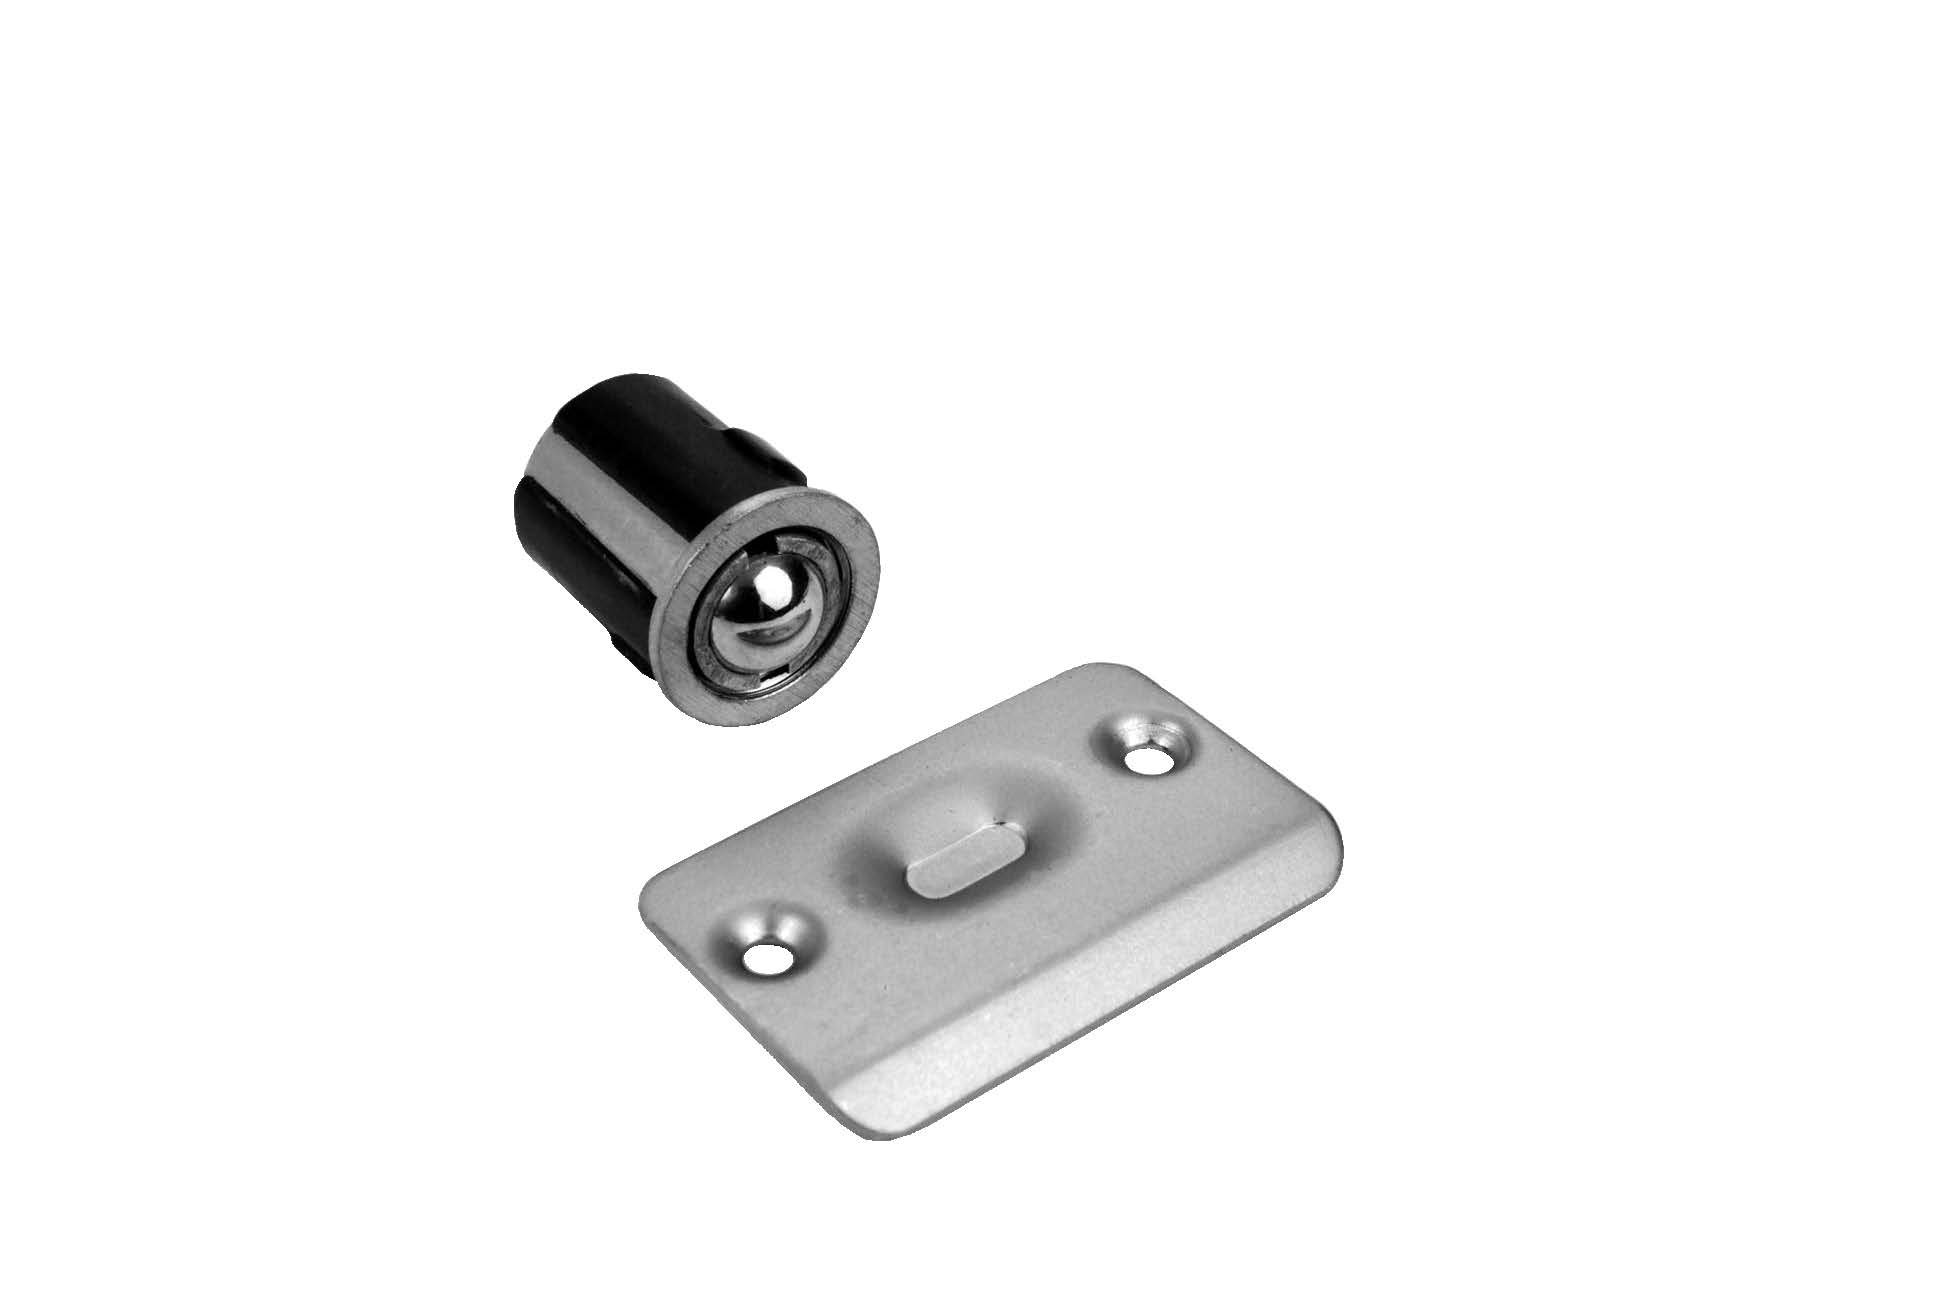 Don-Jo 1716 Cast Brass Drive In Ball Latch, Clear Coated Satin Nickel Plated, 1'' Length x 1'' Width (Pack of 10)